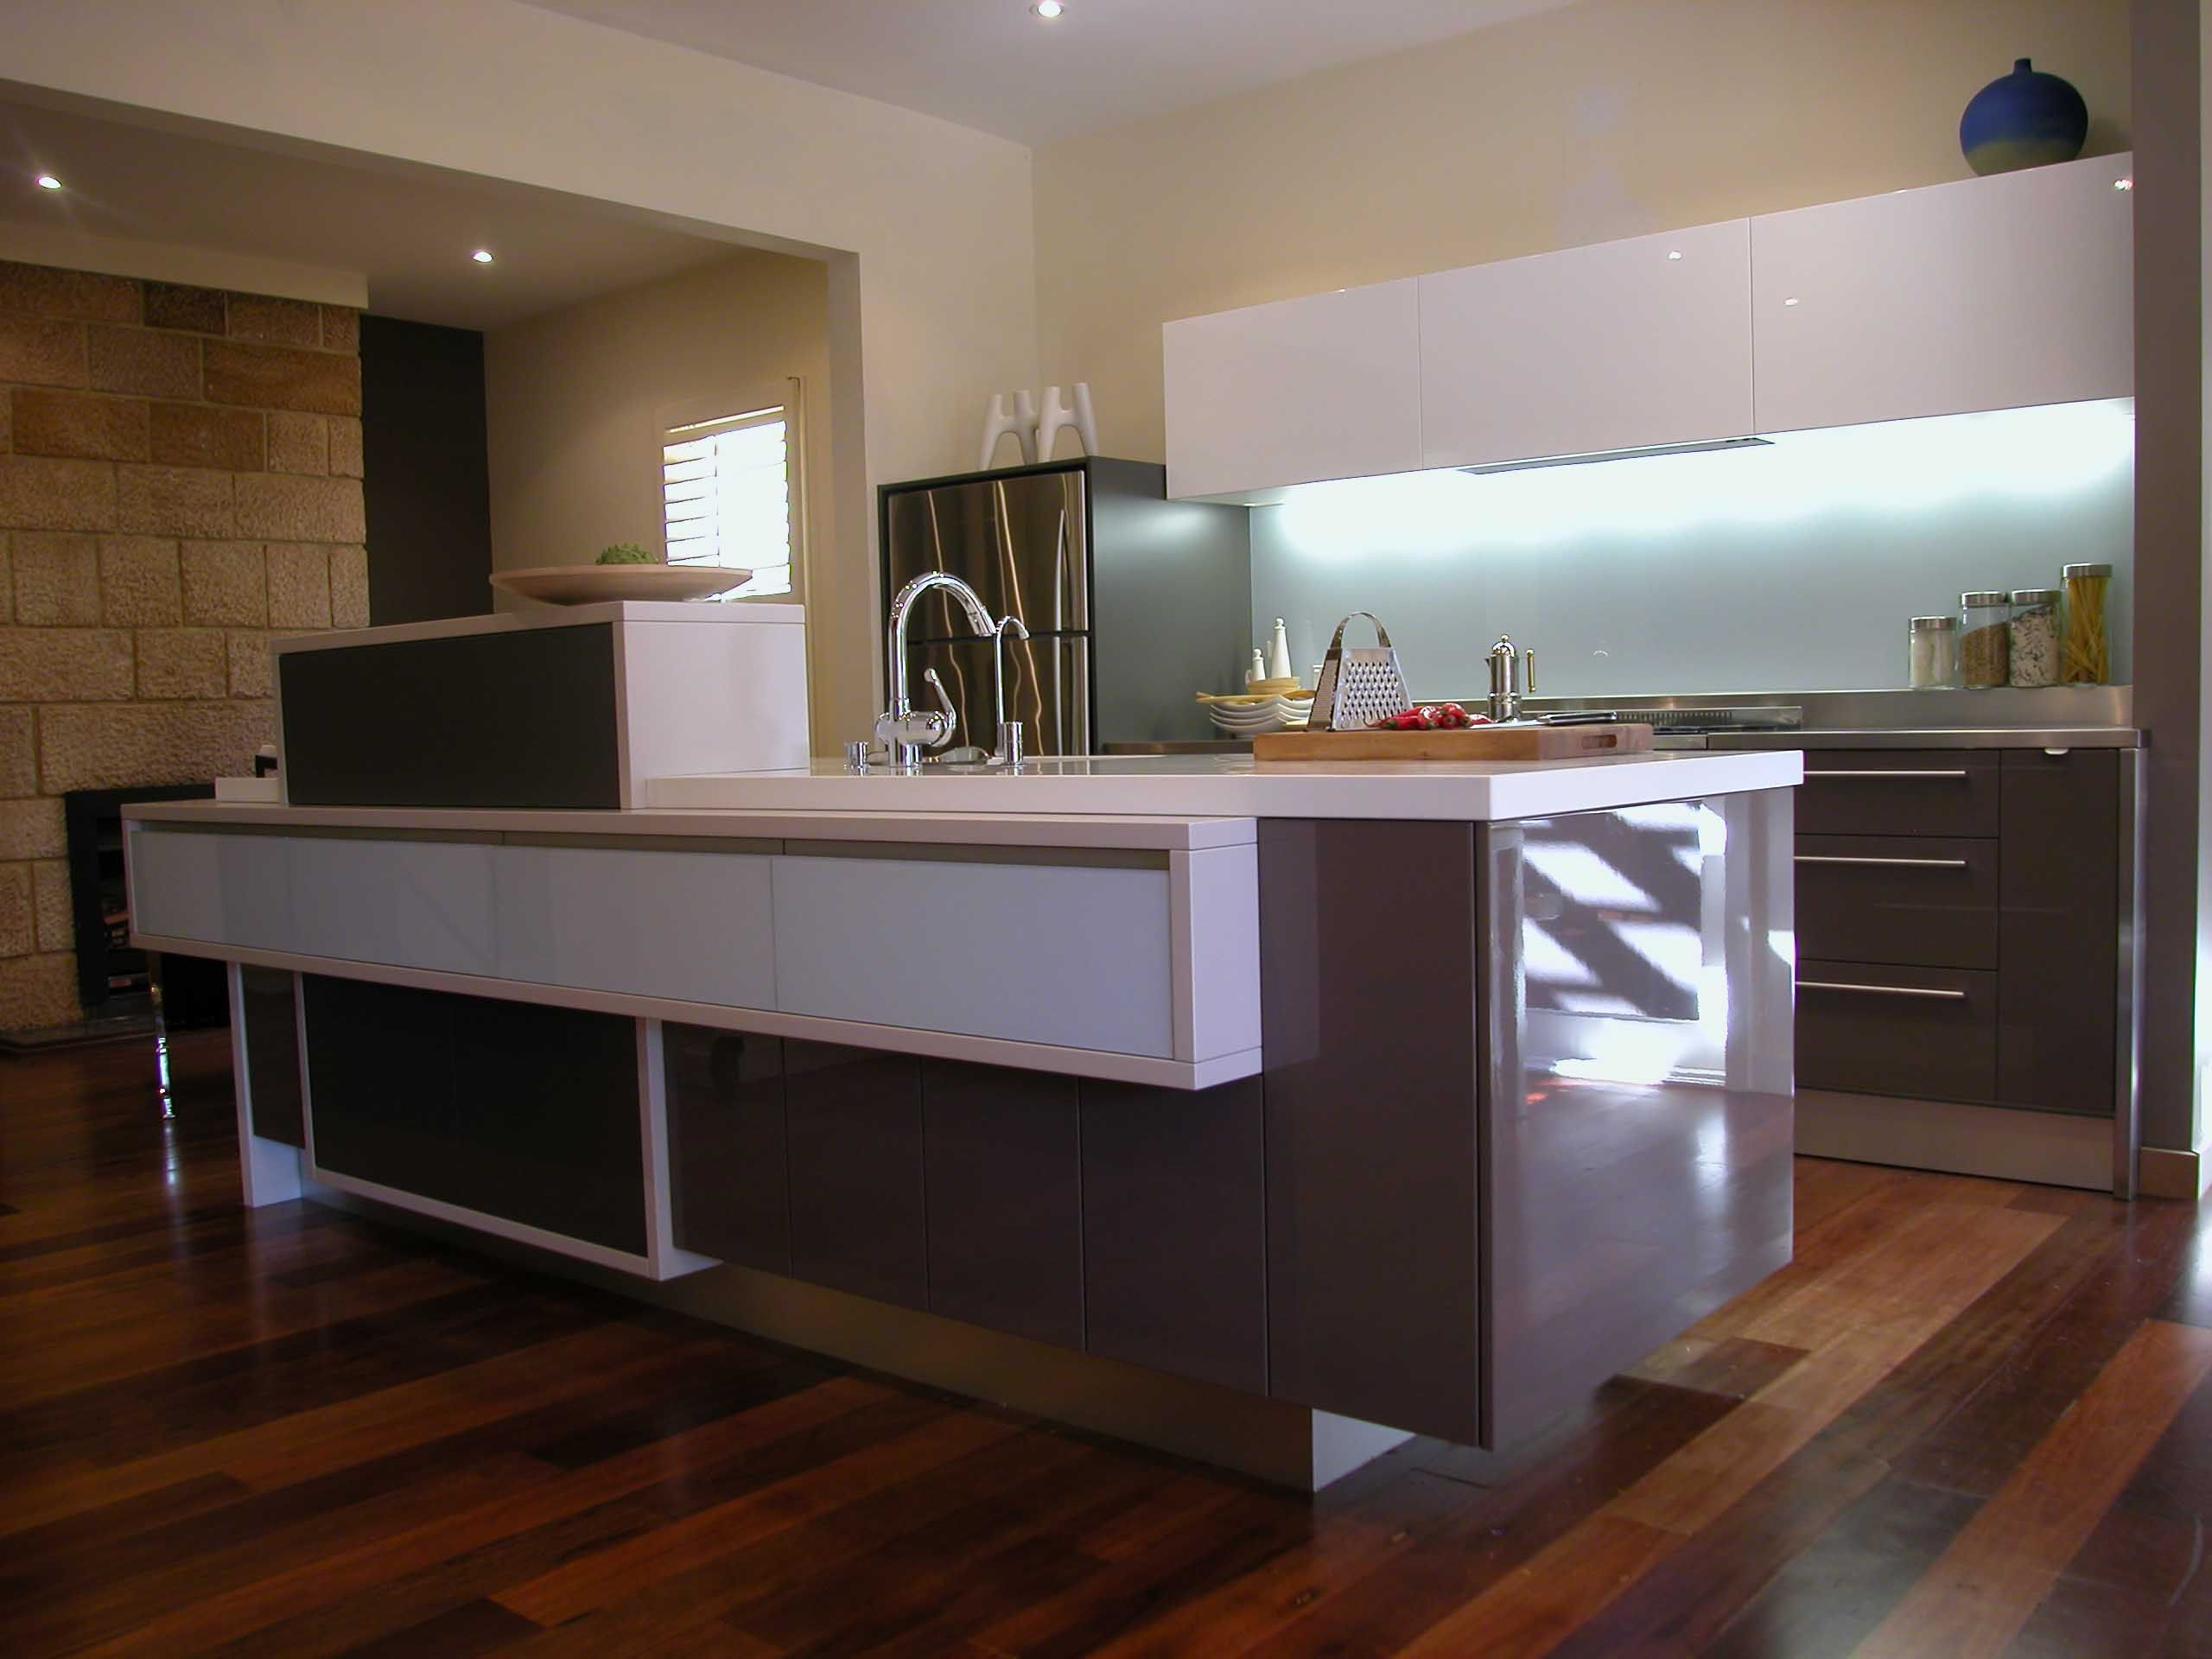 e Wall Kitchen Designs With An Island Kitchen Island e Wall